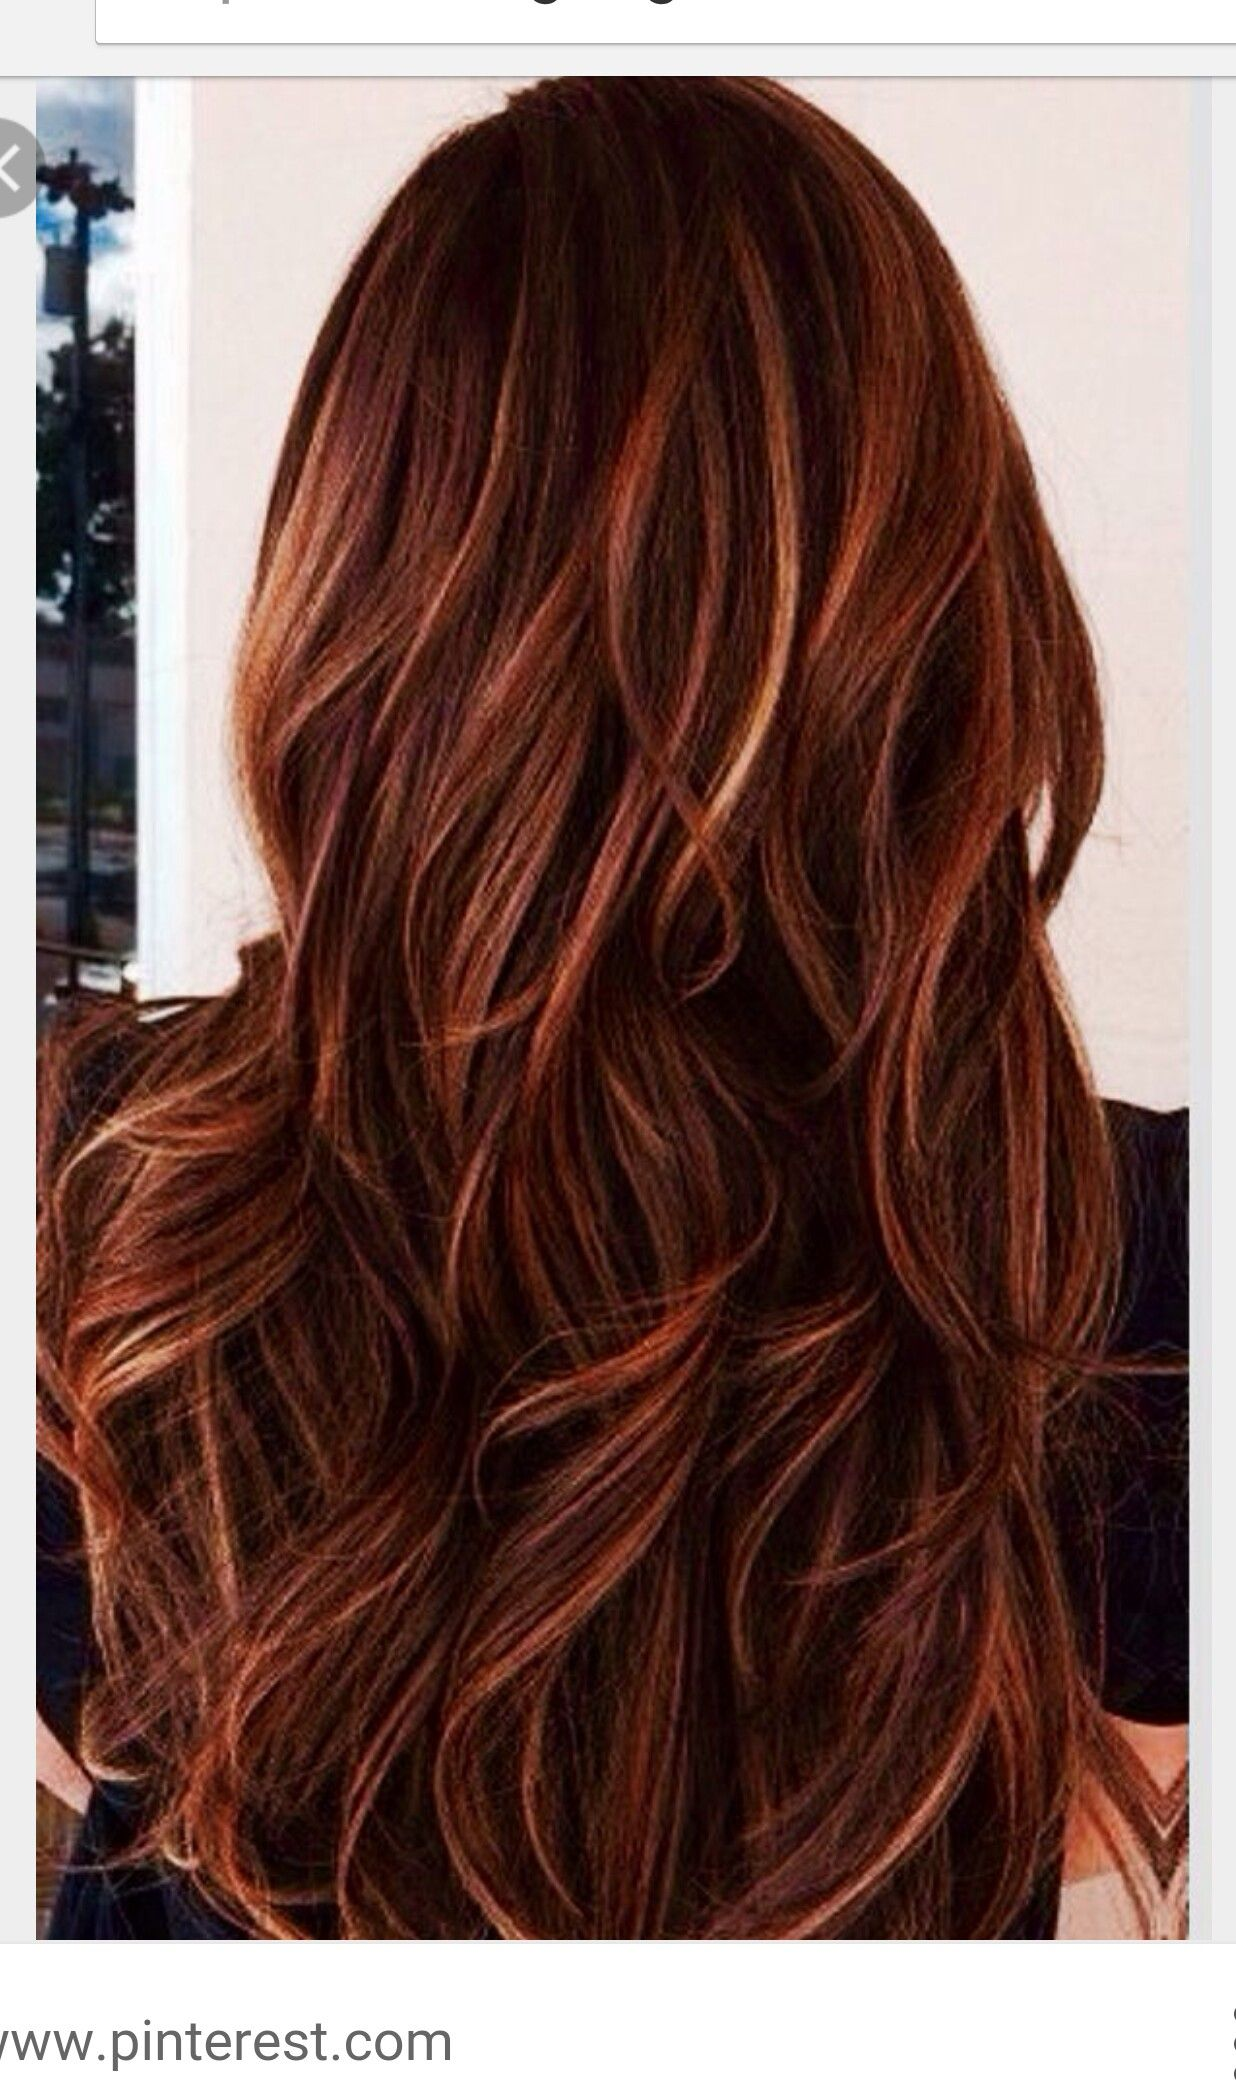 Red auburn hair with caramel highlights i love it i with i had red hair it s so beautiful red heads are so lucky